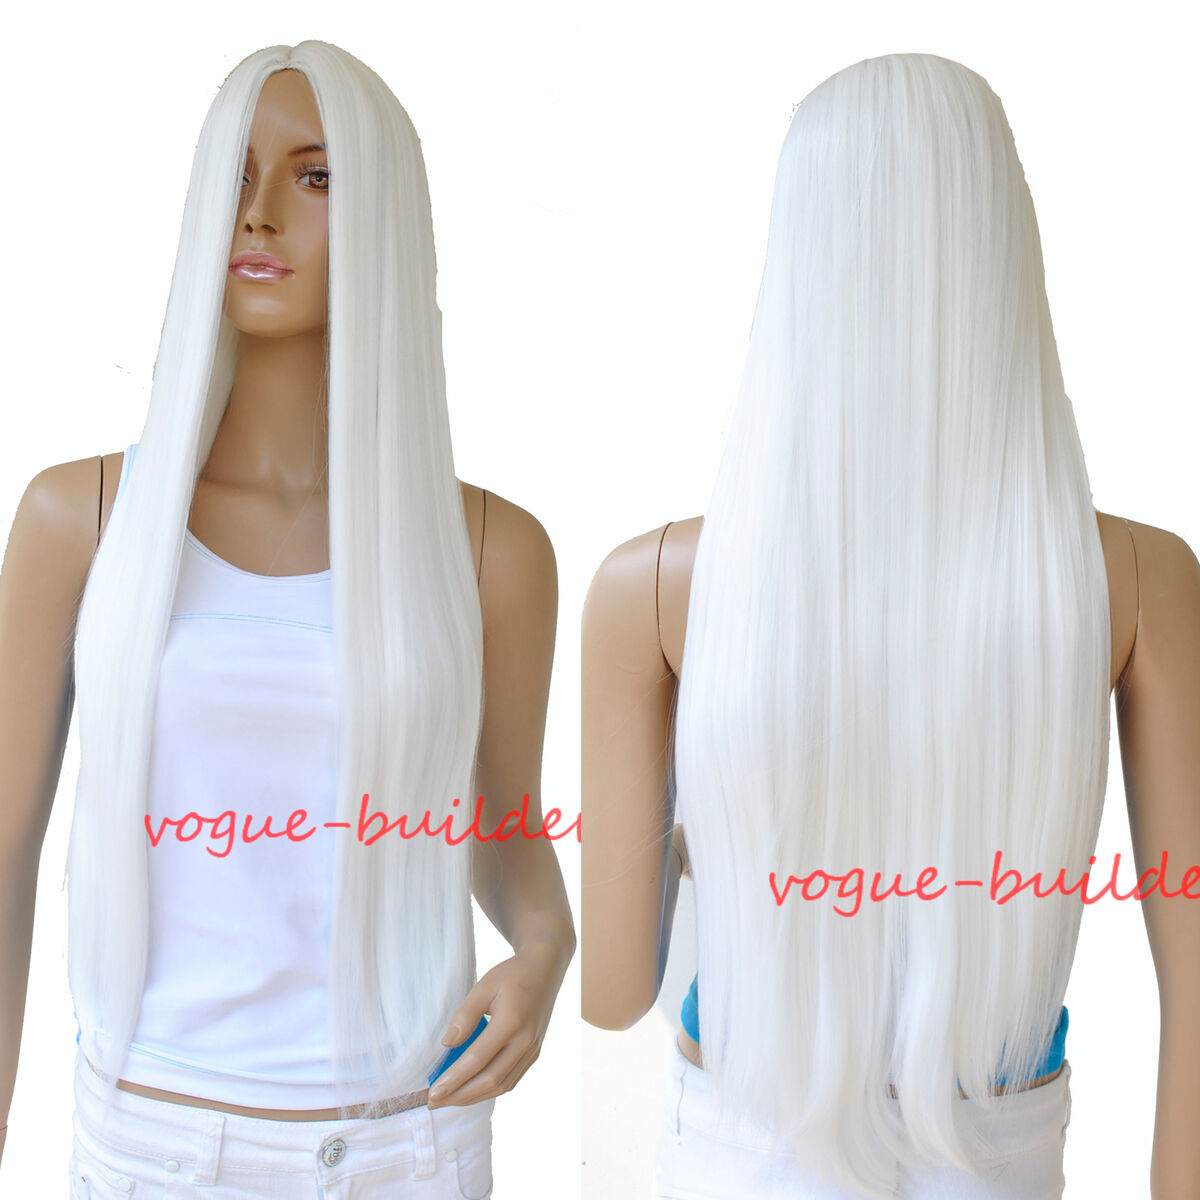 70 cm 28 inch High Heat Resistent Long White Straight Cosplay Party Hair Wig